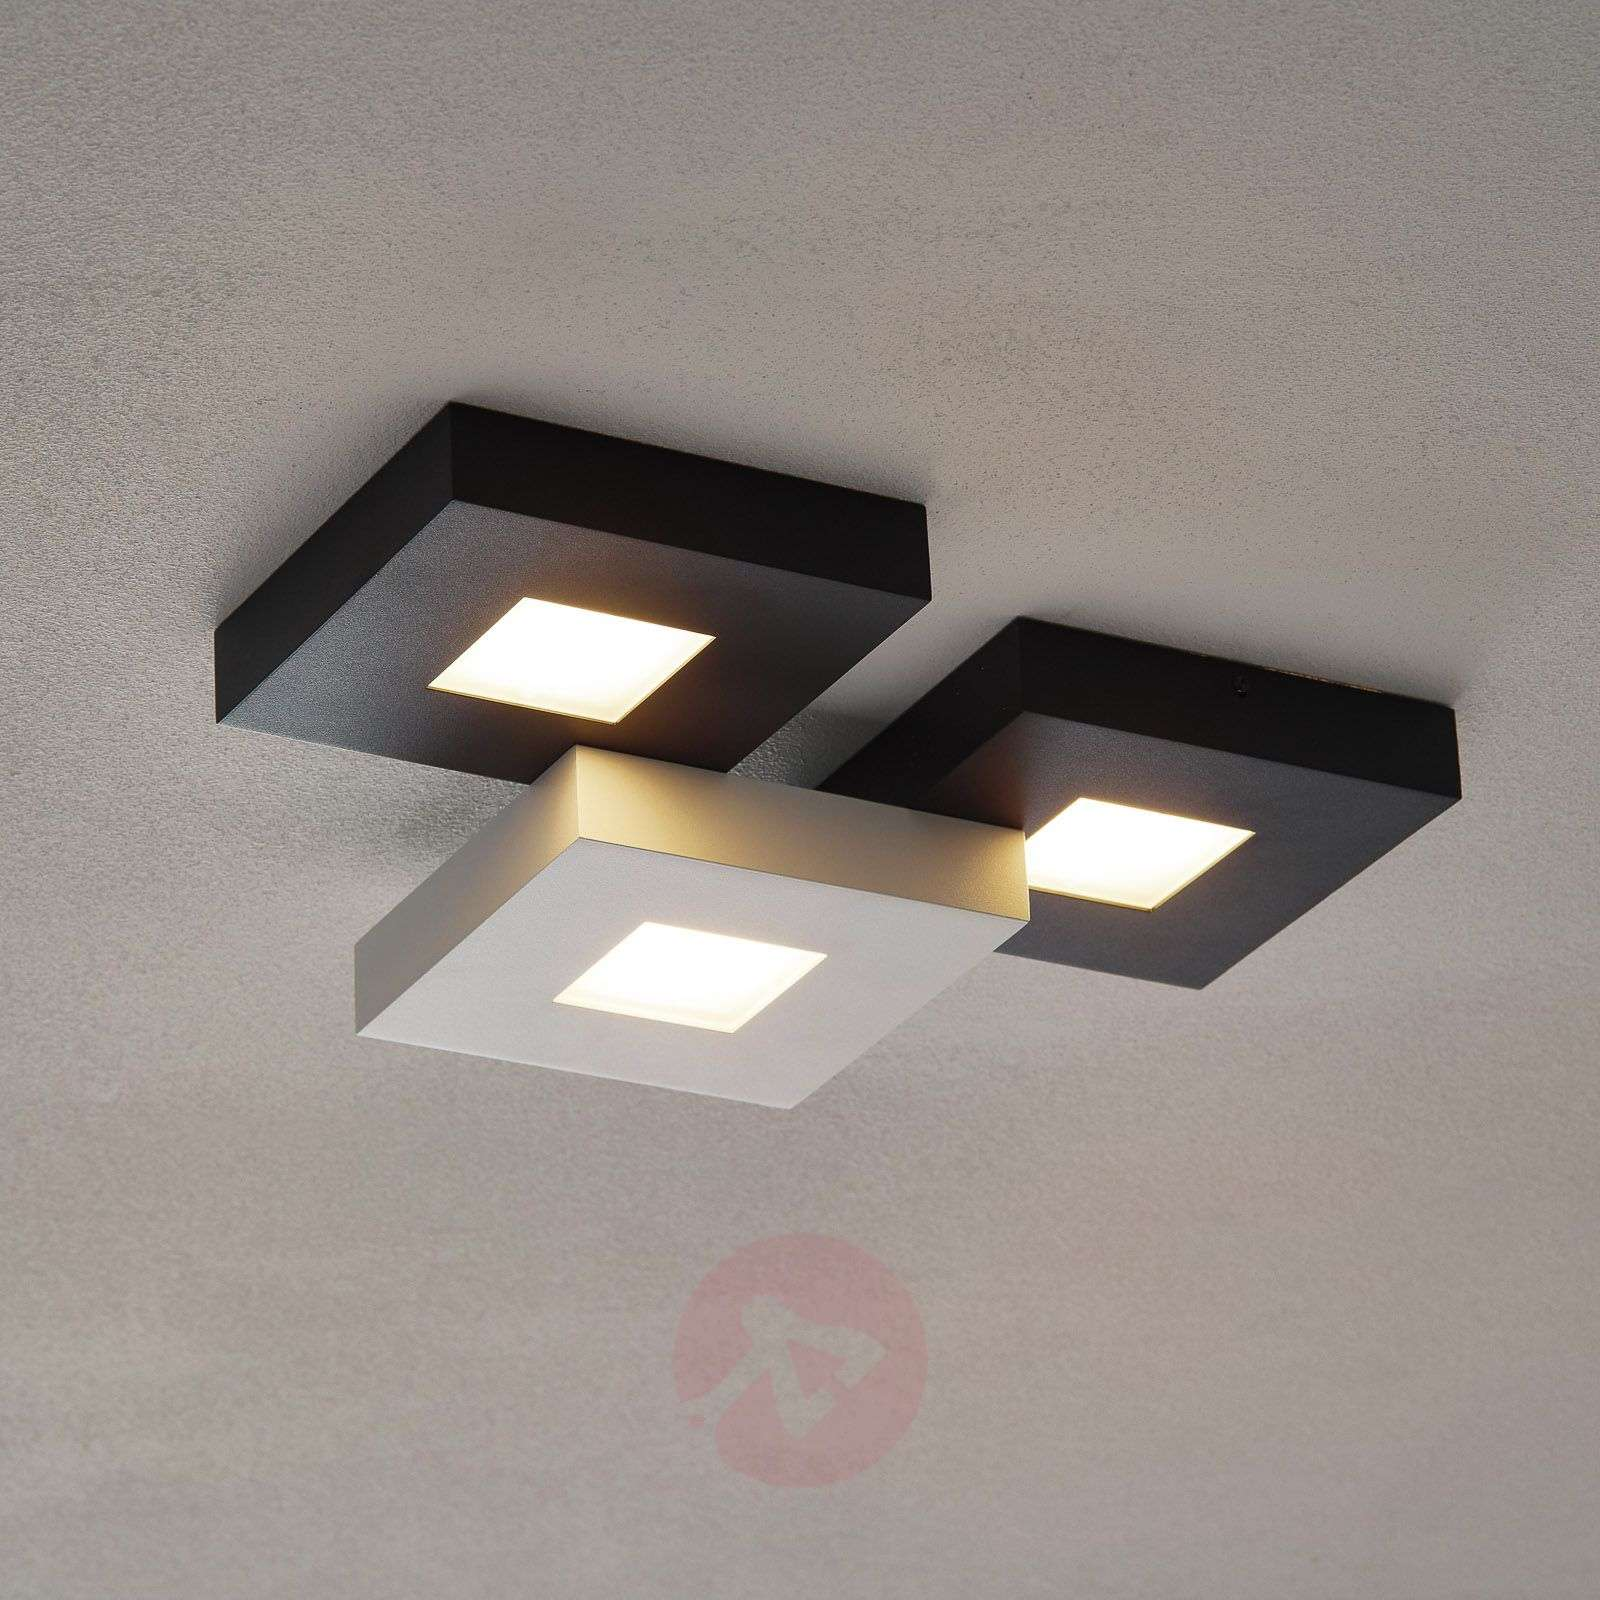 Three-bulb LED ceiling lamp Cubus, black and white-1556075-01